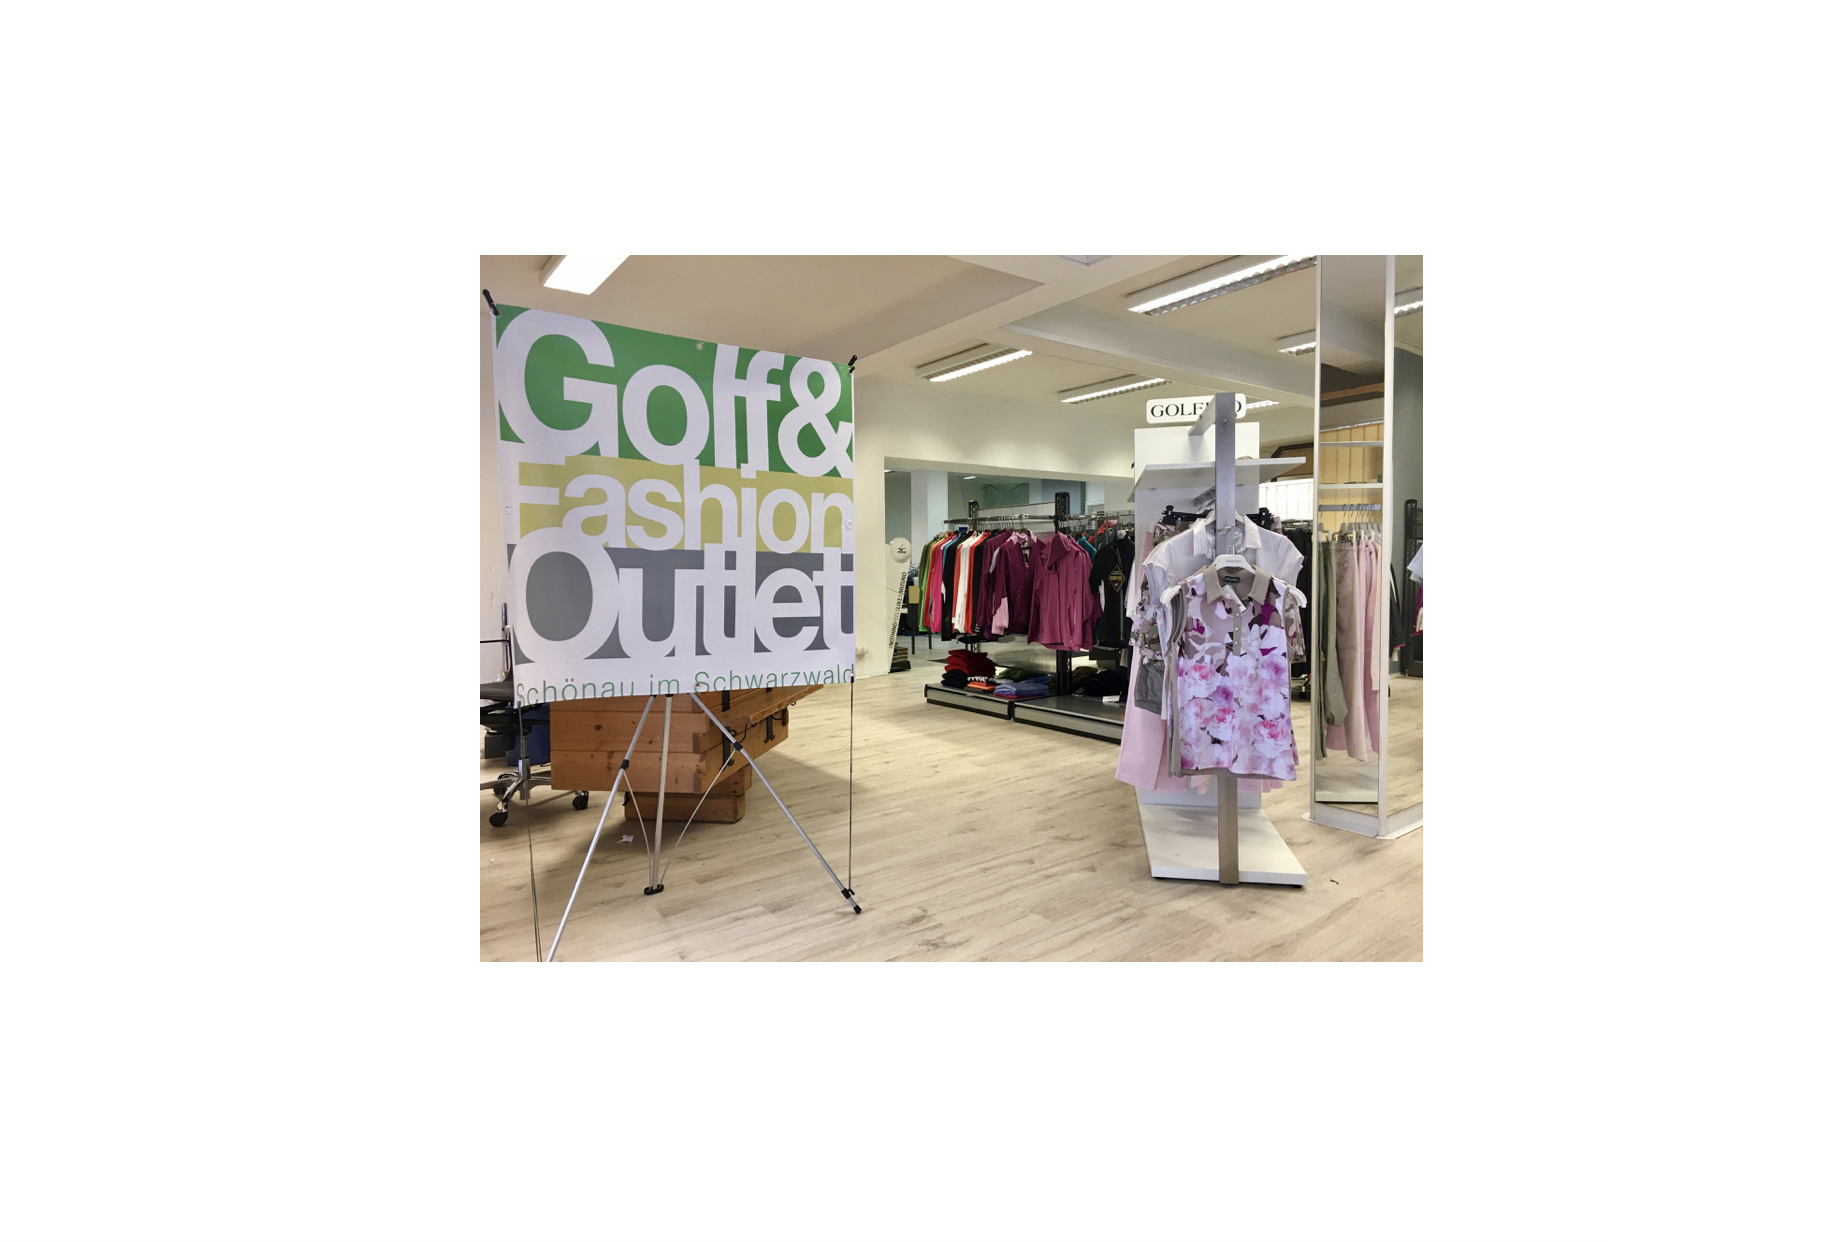 Golf&Fashion Outlet Schönau